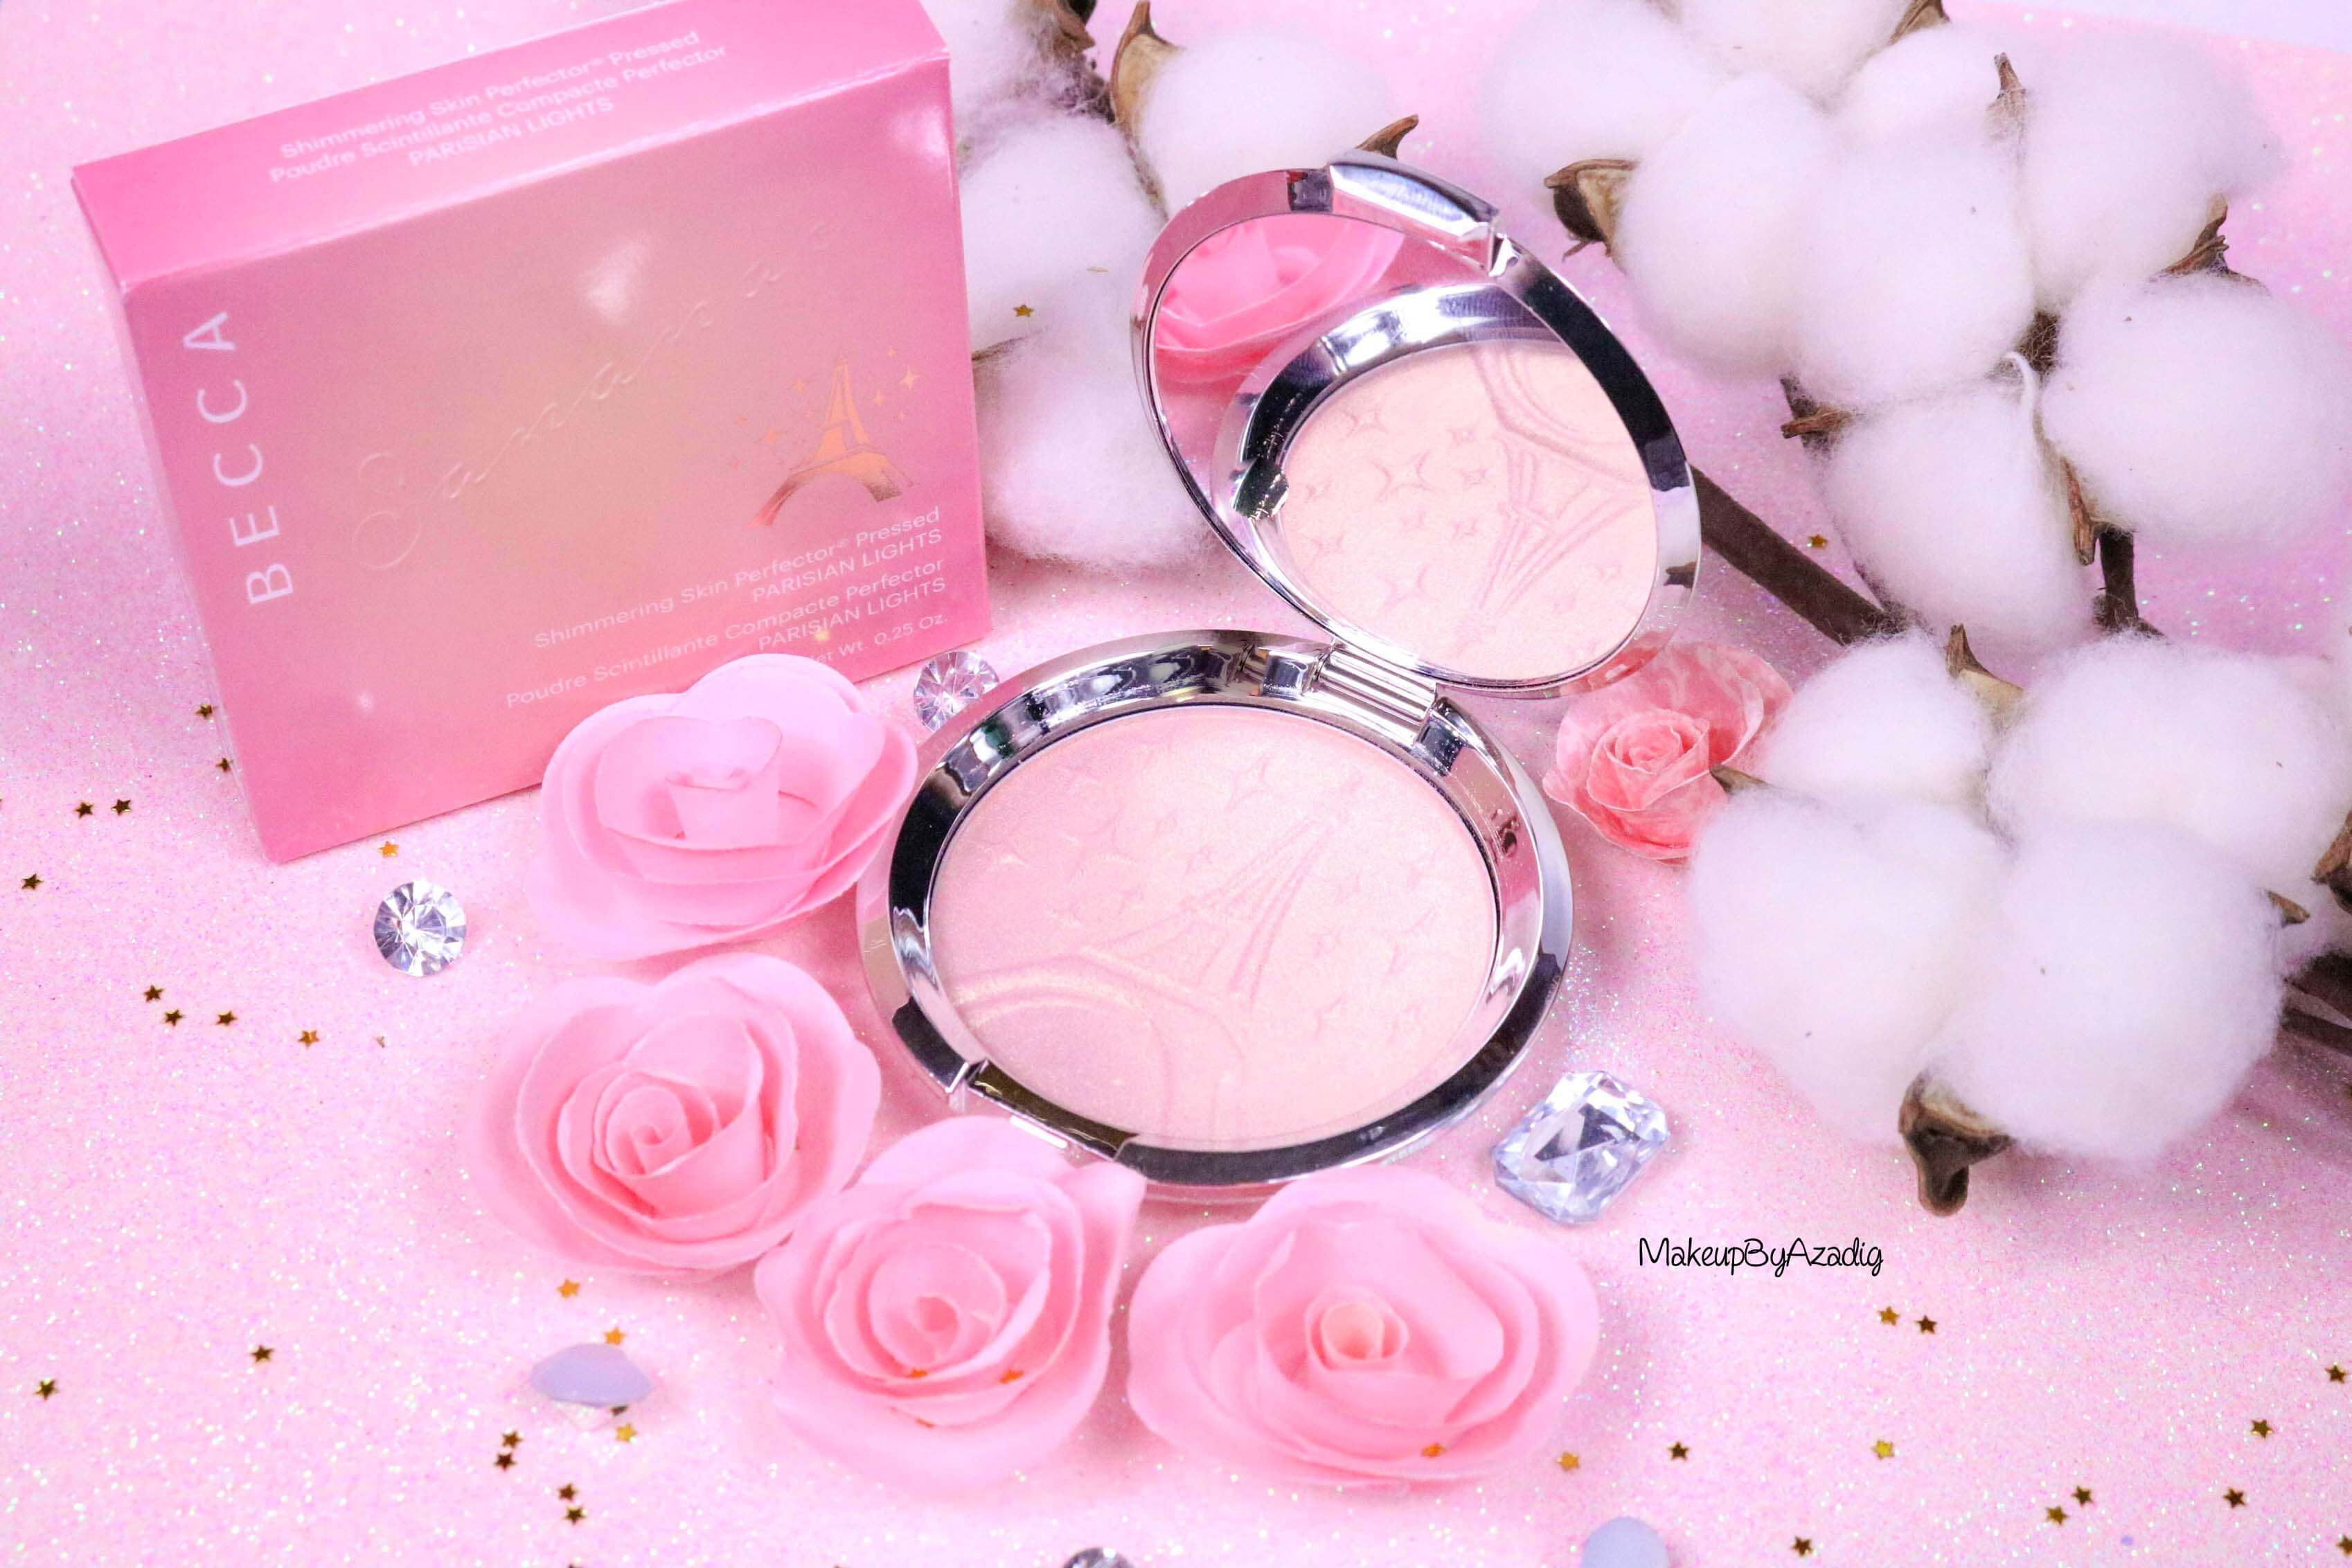 revue-highlighter-becca-sananas-parisian-lights-prix-avis-swatch-beccaxsananas-paris-youtuber-diamond